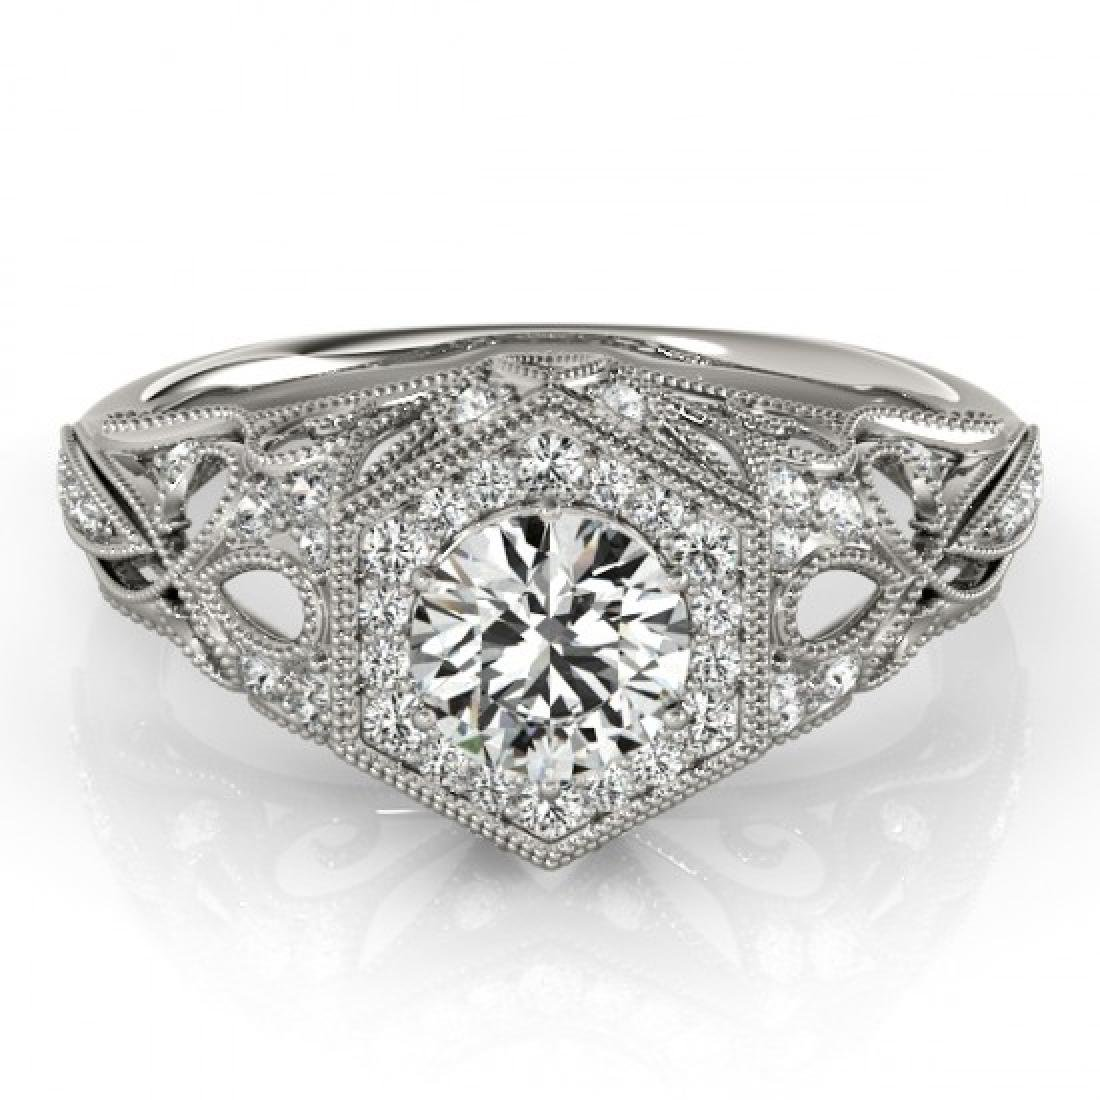 1.15 CTW Certified VS/SI Diamond Solitaire Halo Ring